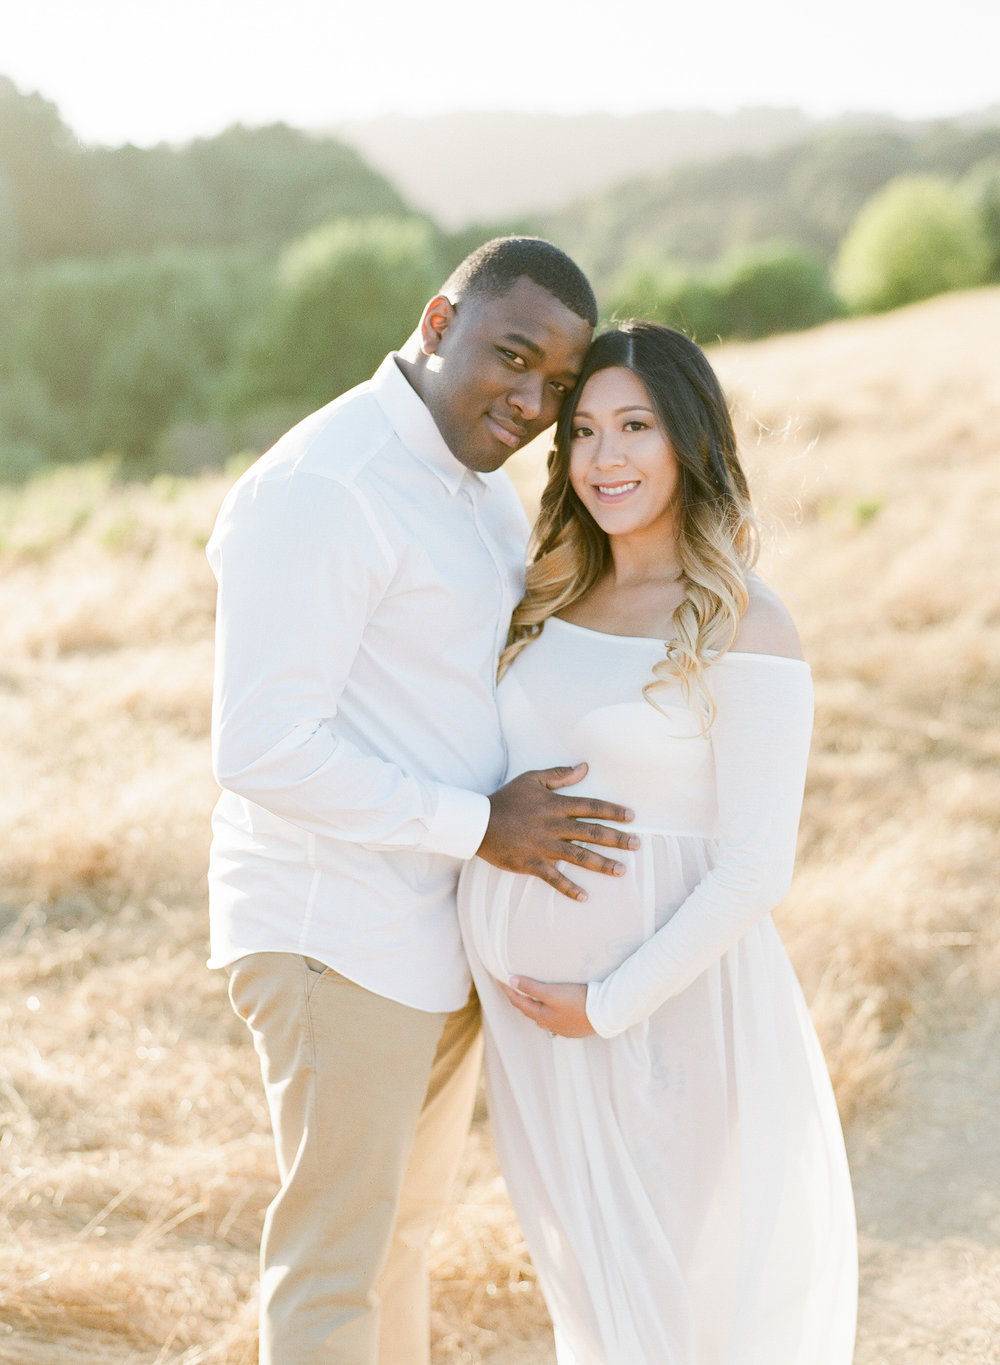 Oakland - San Francisco Maternity Session | Film Photographer